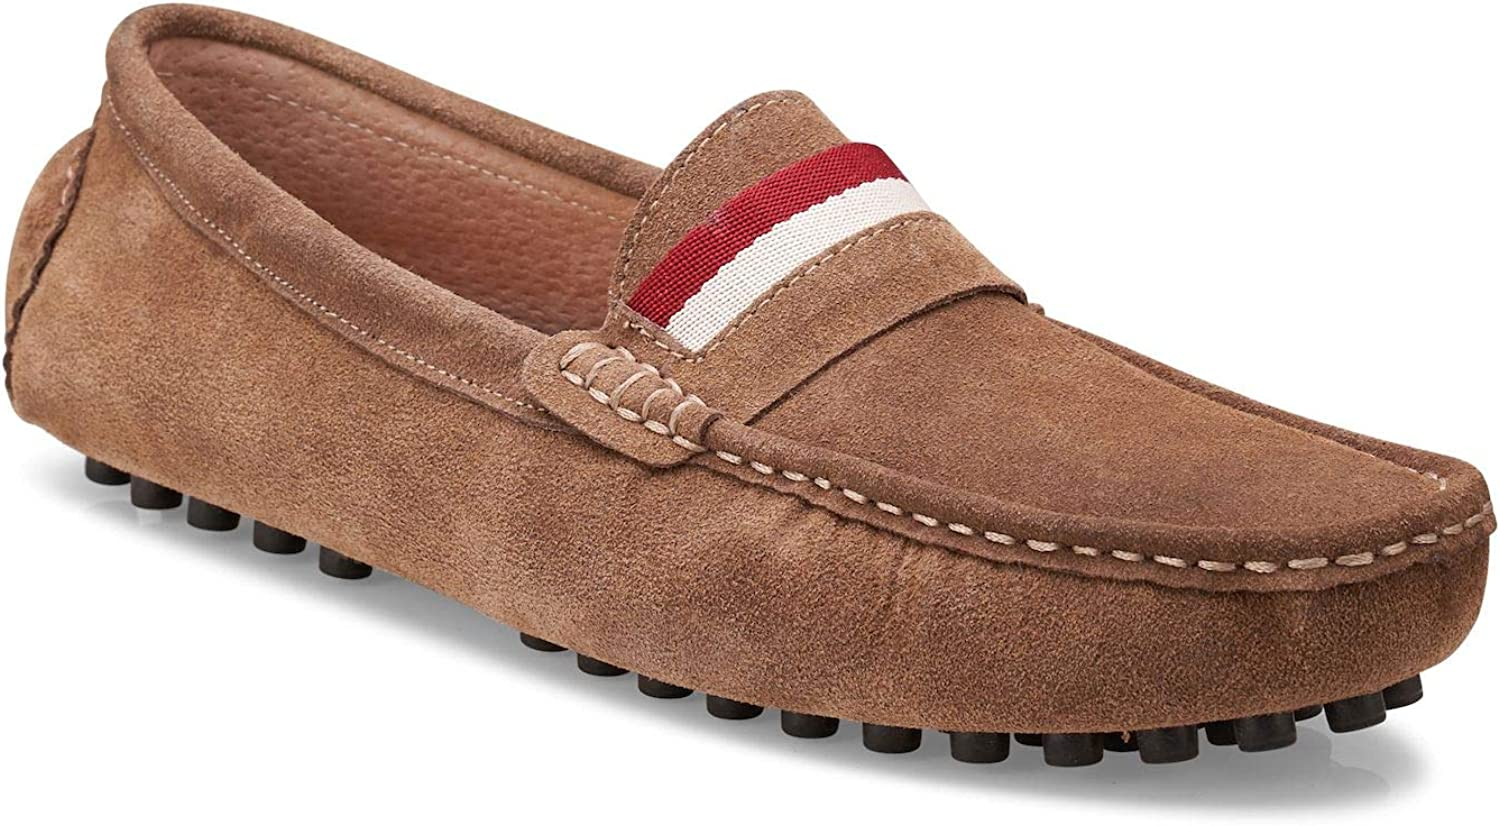 Mens Retro Shoes | Vintage Shoes & Boots Members Only Mens Suede Leather Casual Slip on Driving Loafers Moccasins Shoes $63.00 AT vintagedancer.com